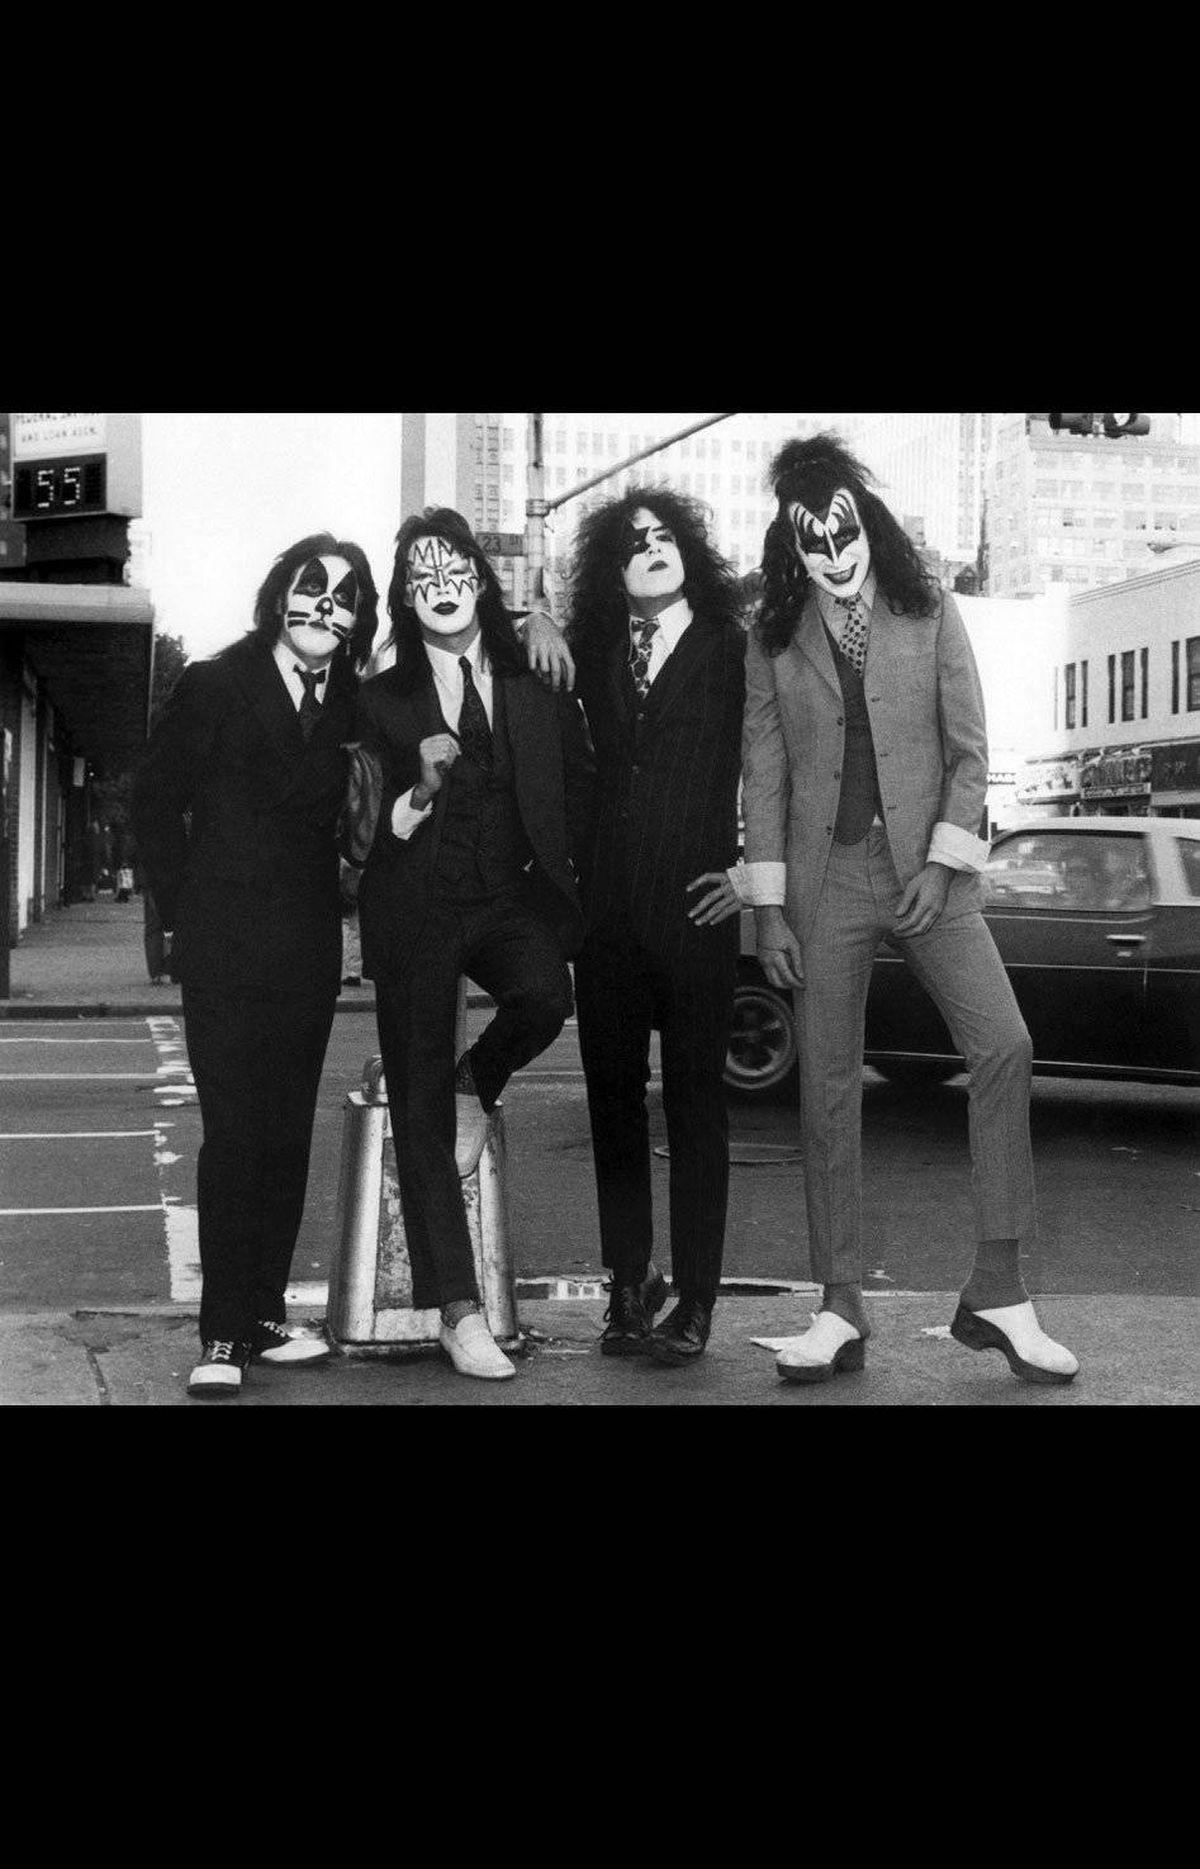 KISS – Dressed to Kill (1974) We were working on a photo novella for Queen magazine [now Harper's Bazaar UK]. The story was about KISS in their secret identities going to work in the morning. You can see that they're wearing suits, so no one would recognize that they were KISS. Nobody knew who they were, it was still early days, and KISS wasn't well known at all, even in New York. You have to be more than weird to get attention here. People kind of glanced at them, they may have thought it was a little early for Halloween. It takes a lot to shock a New Yorker.